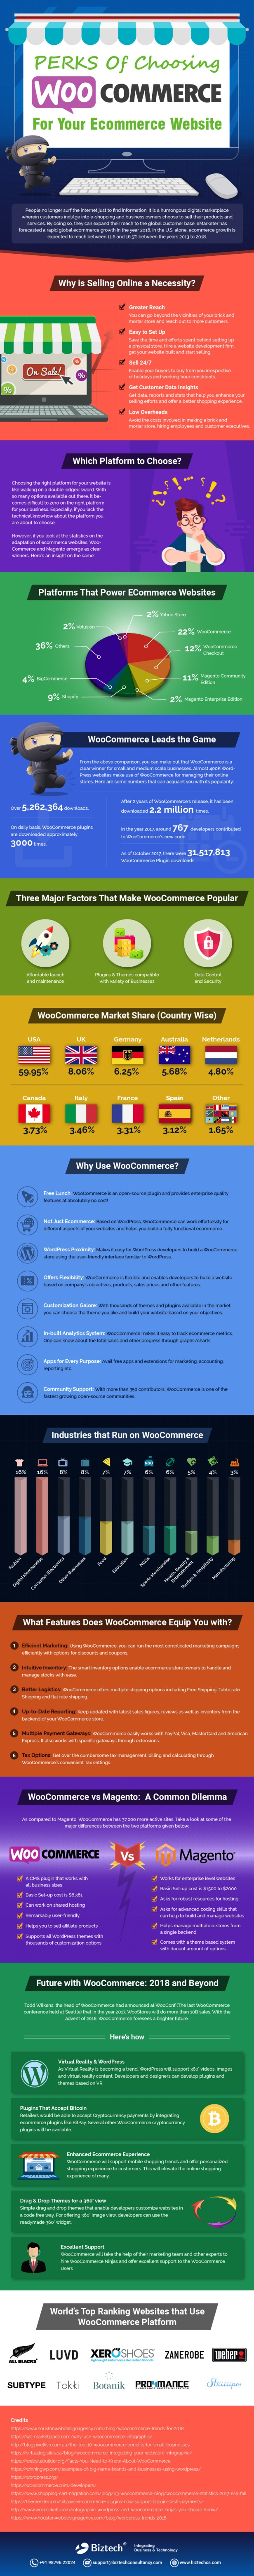 PERKS-Of-Choosing-WooCommerce-For-Your-Ecommerce-Website-An-Infographic